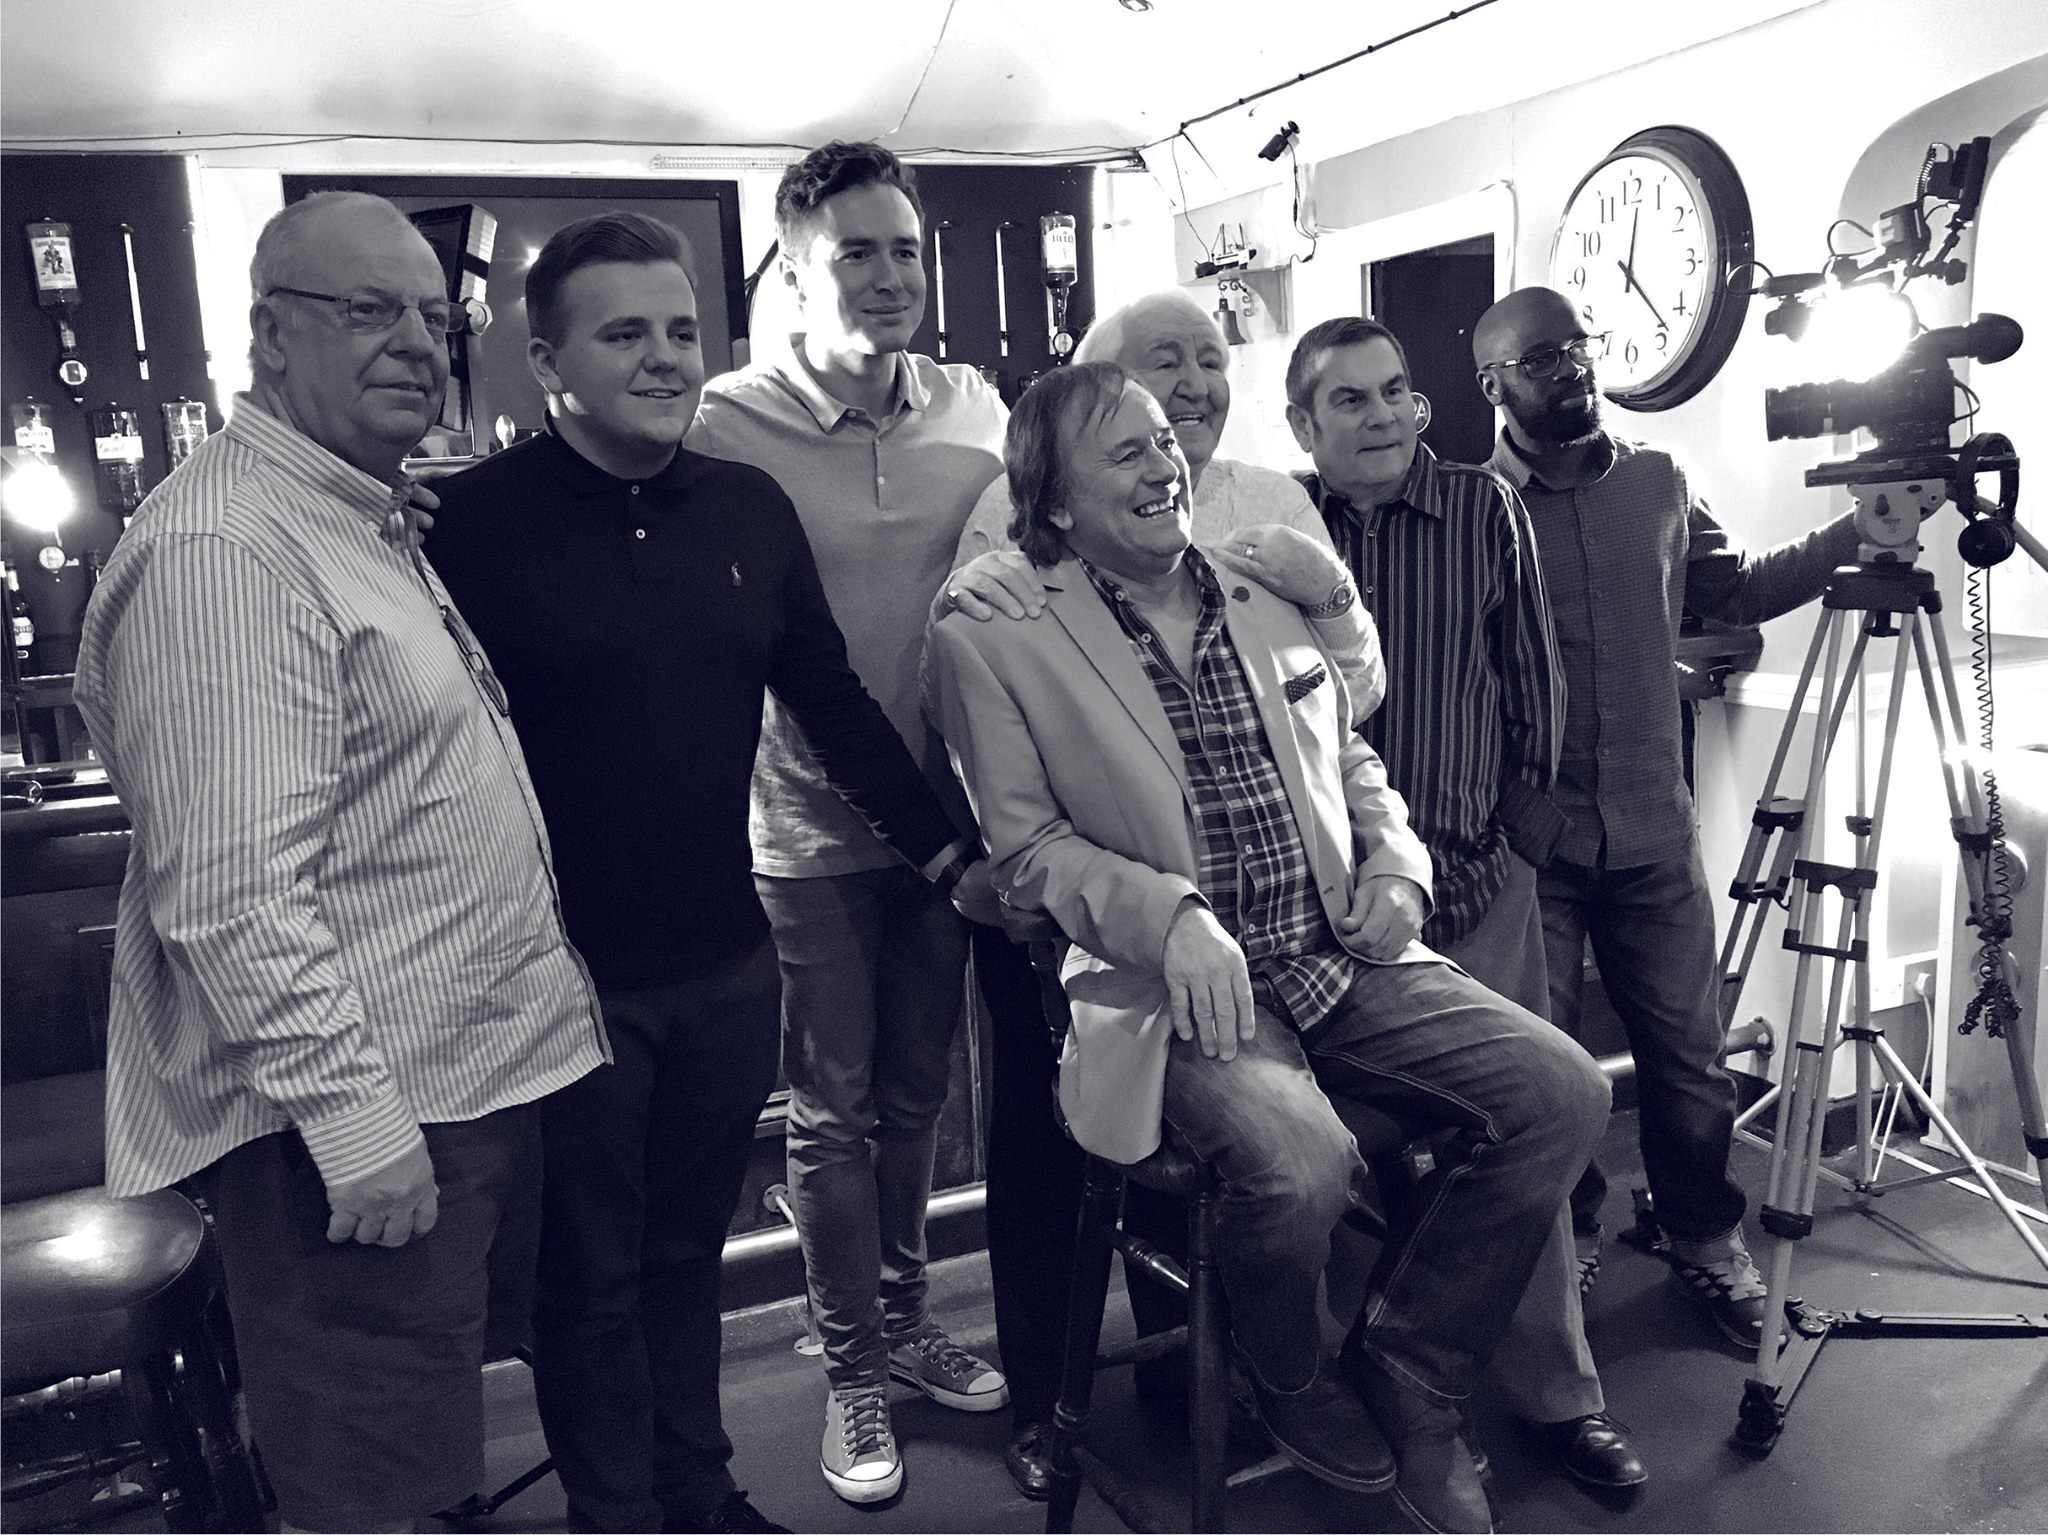 """Relative Motion Would be the production unit for a new TV Comedy show """"Caught in the Act"""". Executive Producer Duncan Norvelle,Produced by Michael HallMcpherson and Director Efe Andre.  Subfrantic Services would be the principal suppliers for lighting an sound.  The Boys lining up for some press shots on location at The Winchester Club, Monster first days filming on ''Court in the Act""""!  From left: Bill Bailey (Winchester Club) Charlie Bailey (Comedian) Michael Hall Mcpherson (Producer) Duncan Norvell (Comedian, Writer) Jimmy Jones (Comedian) Eric Hall ( Monster Legend!)(Director) What A Suspicious Bunch!"""